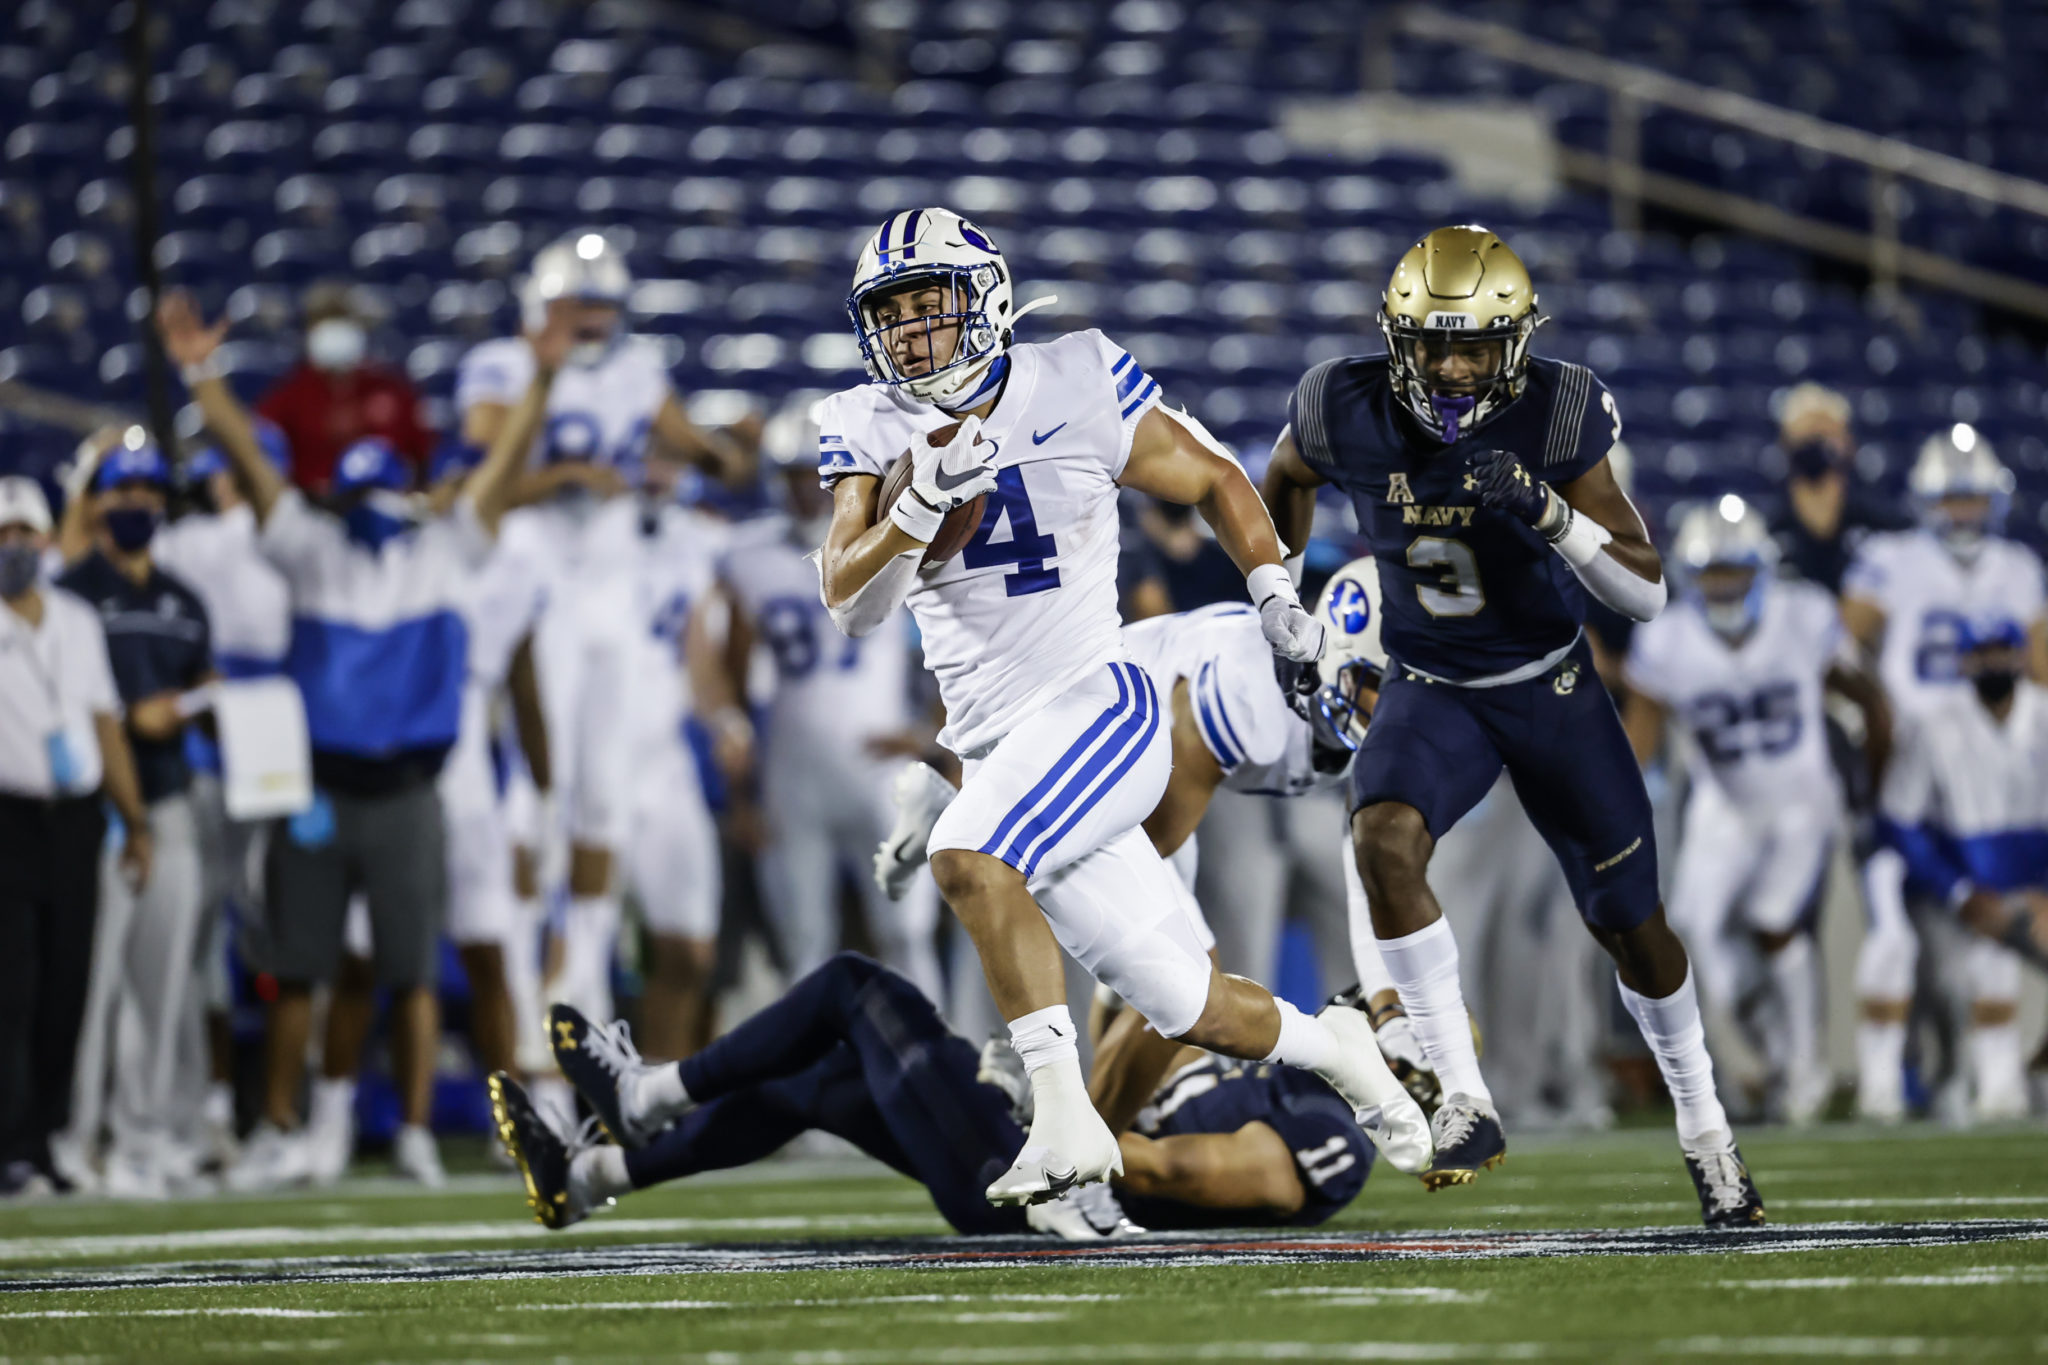 BYU Football dominates Navy 55-3 in season opener